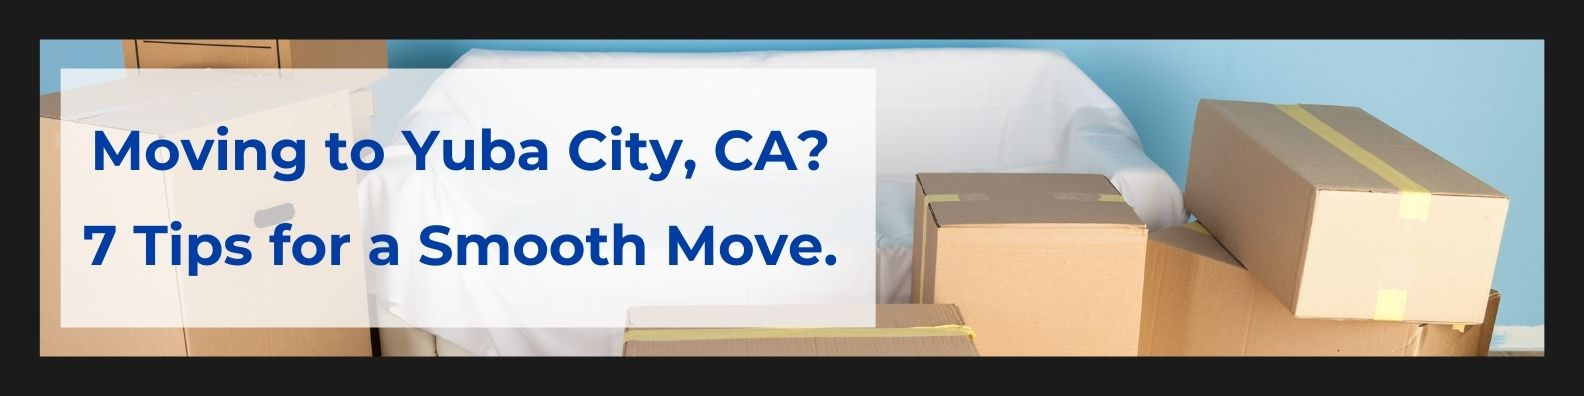 Moving to Yuba City, CA 7 Tips for a Smooth Move.